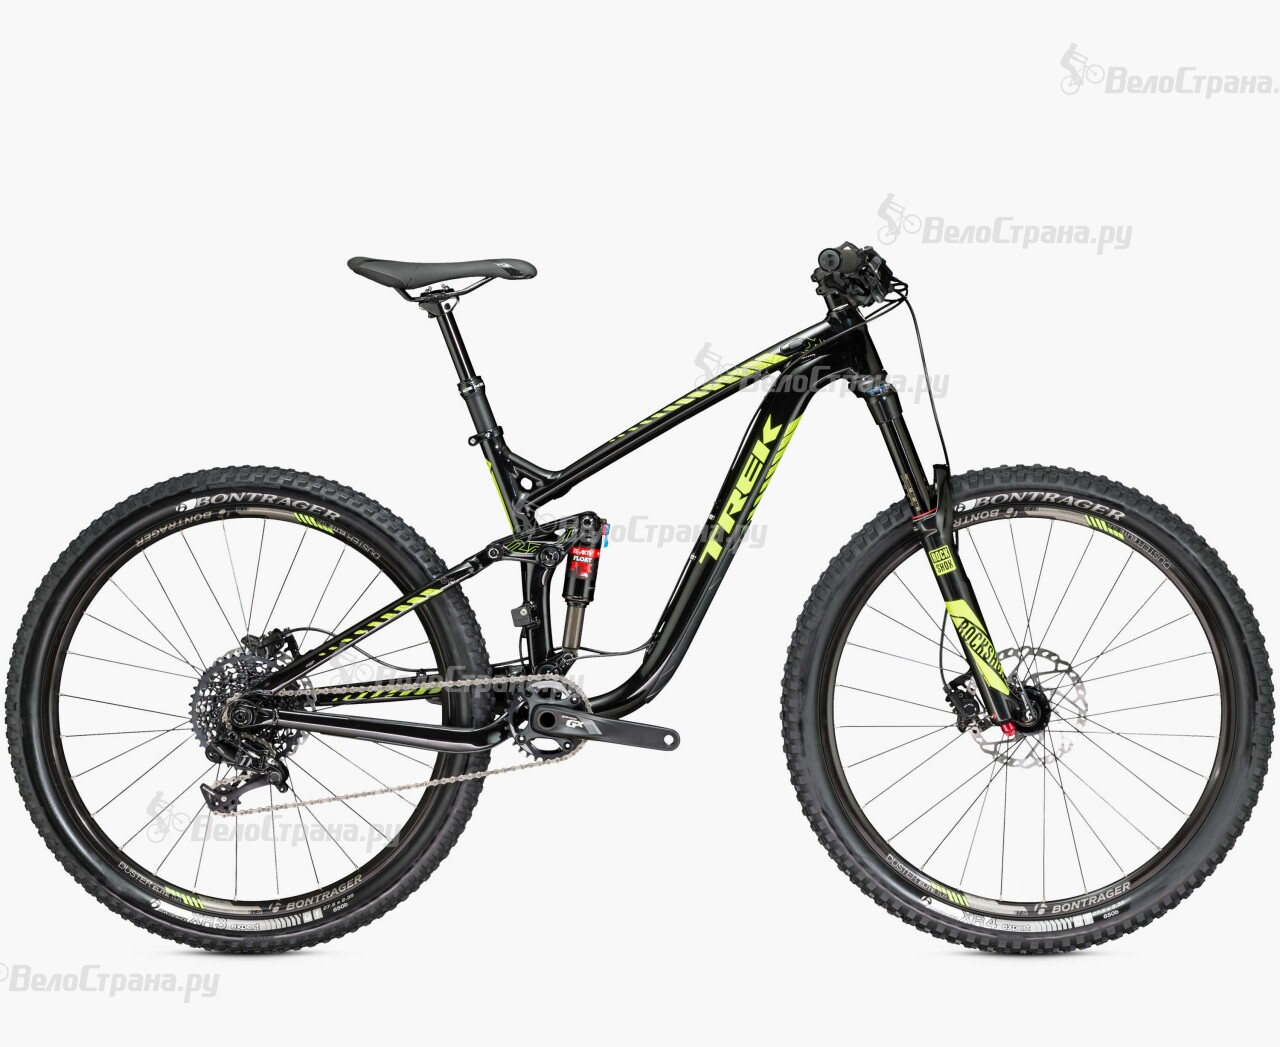 Велосипед Trek Remedy 8 27.5 (2016) велосипед trek remedy 7 27 5 2016